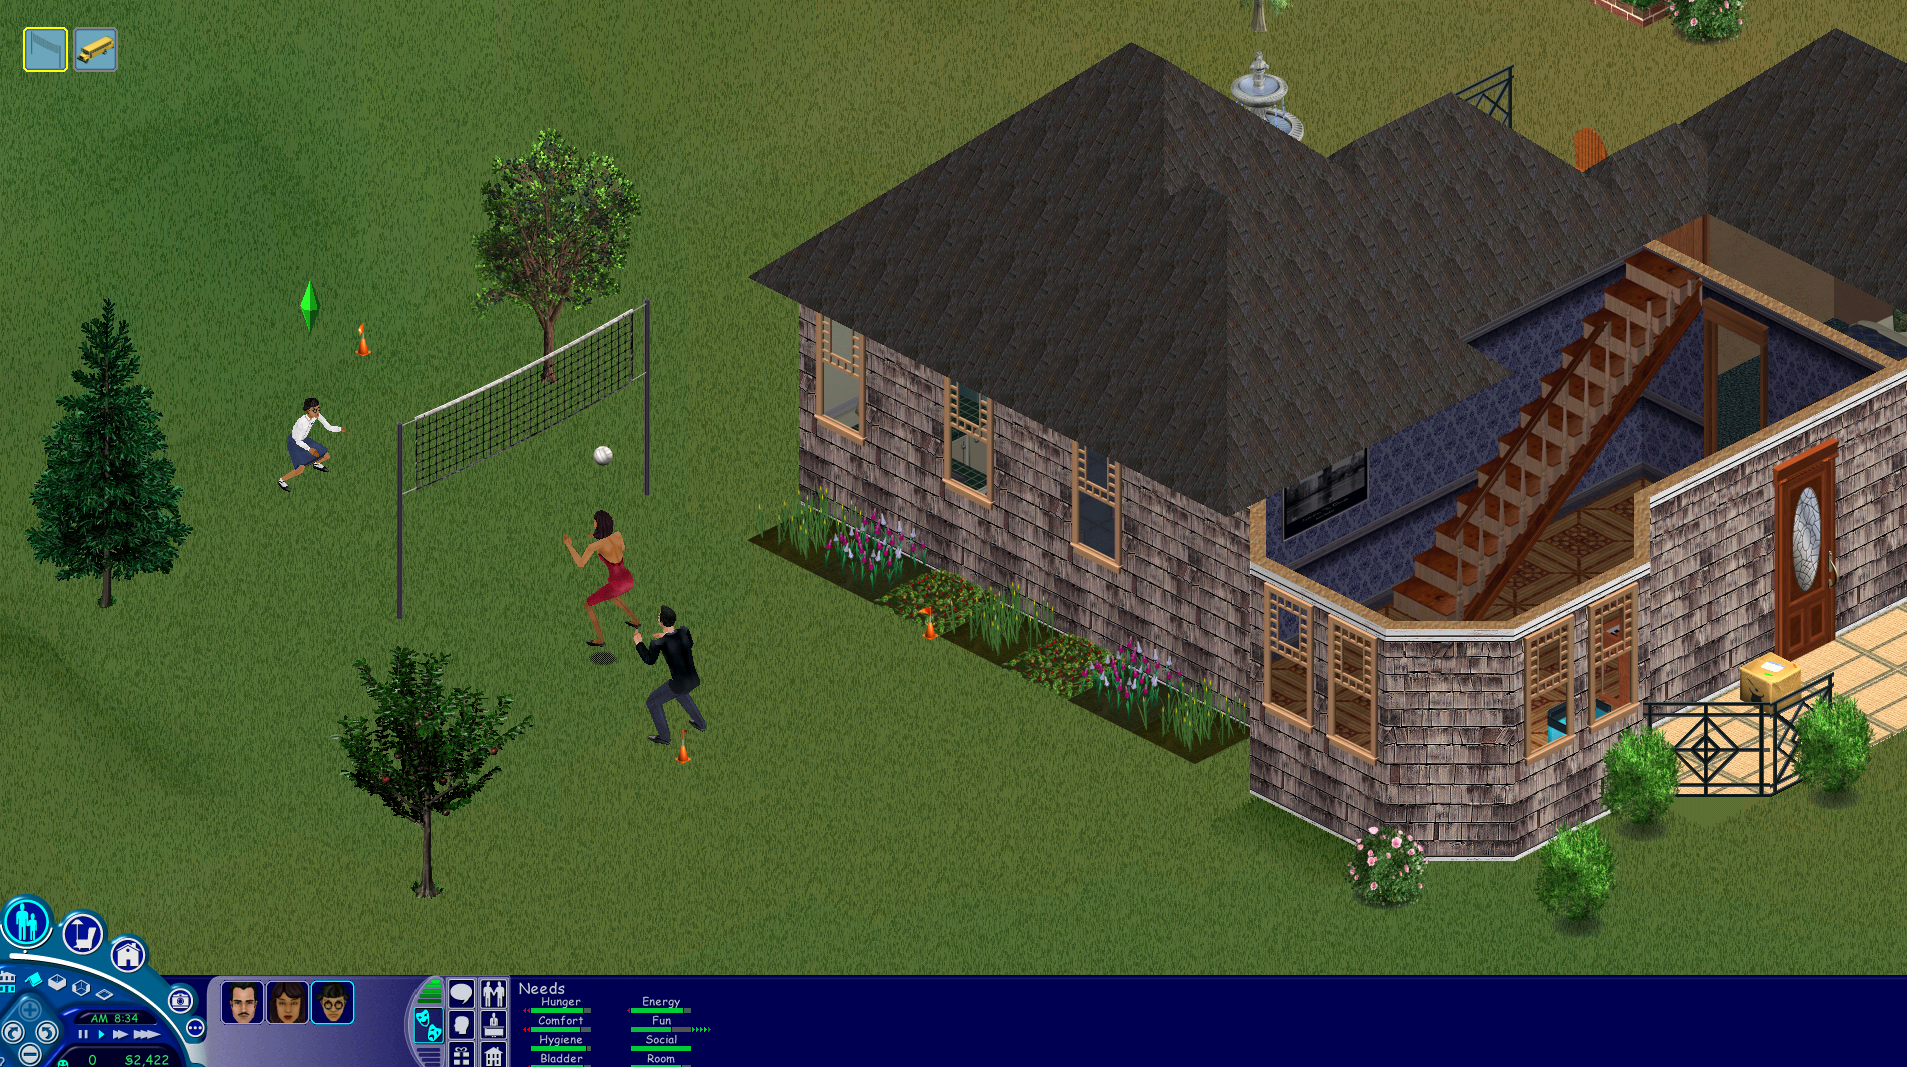 How To Play The Sims 1 on Windows 10 + Widescreen Fix | SimsVIP